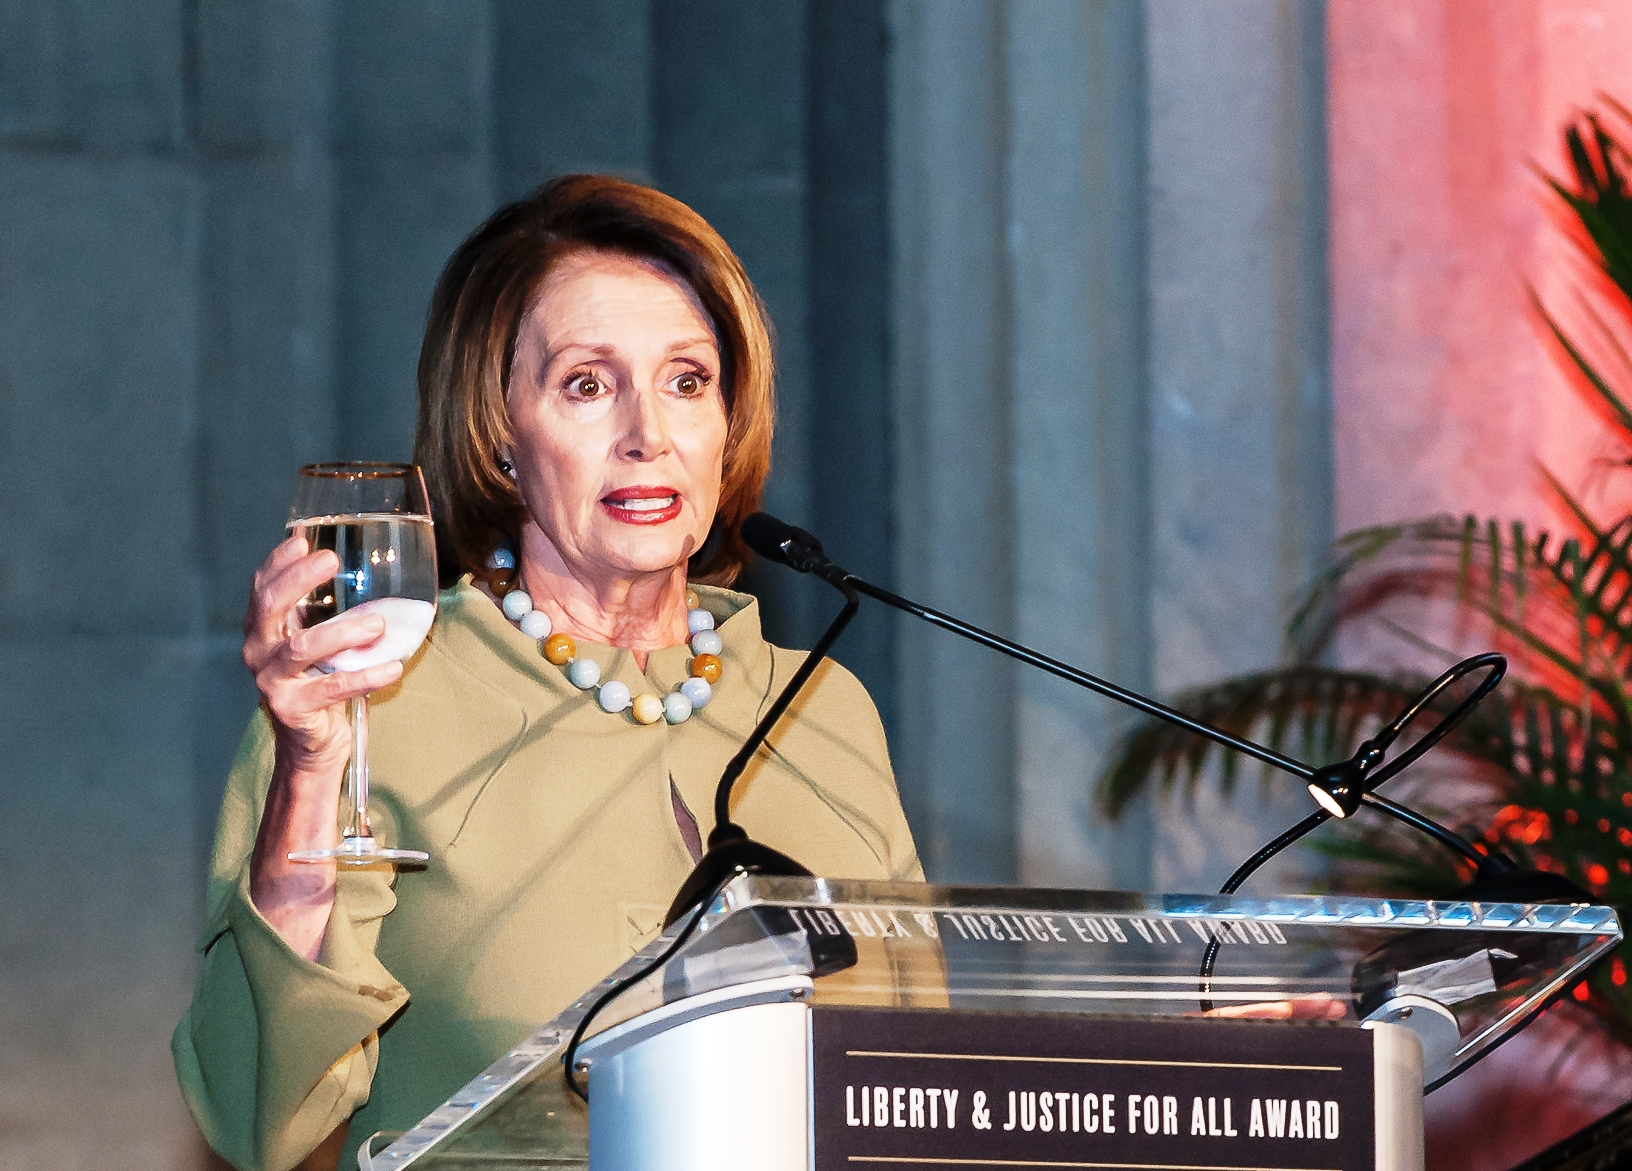 Pelosi Snaps Again – This Time Over AOC